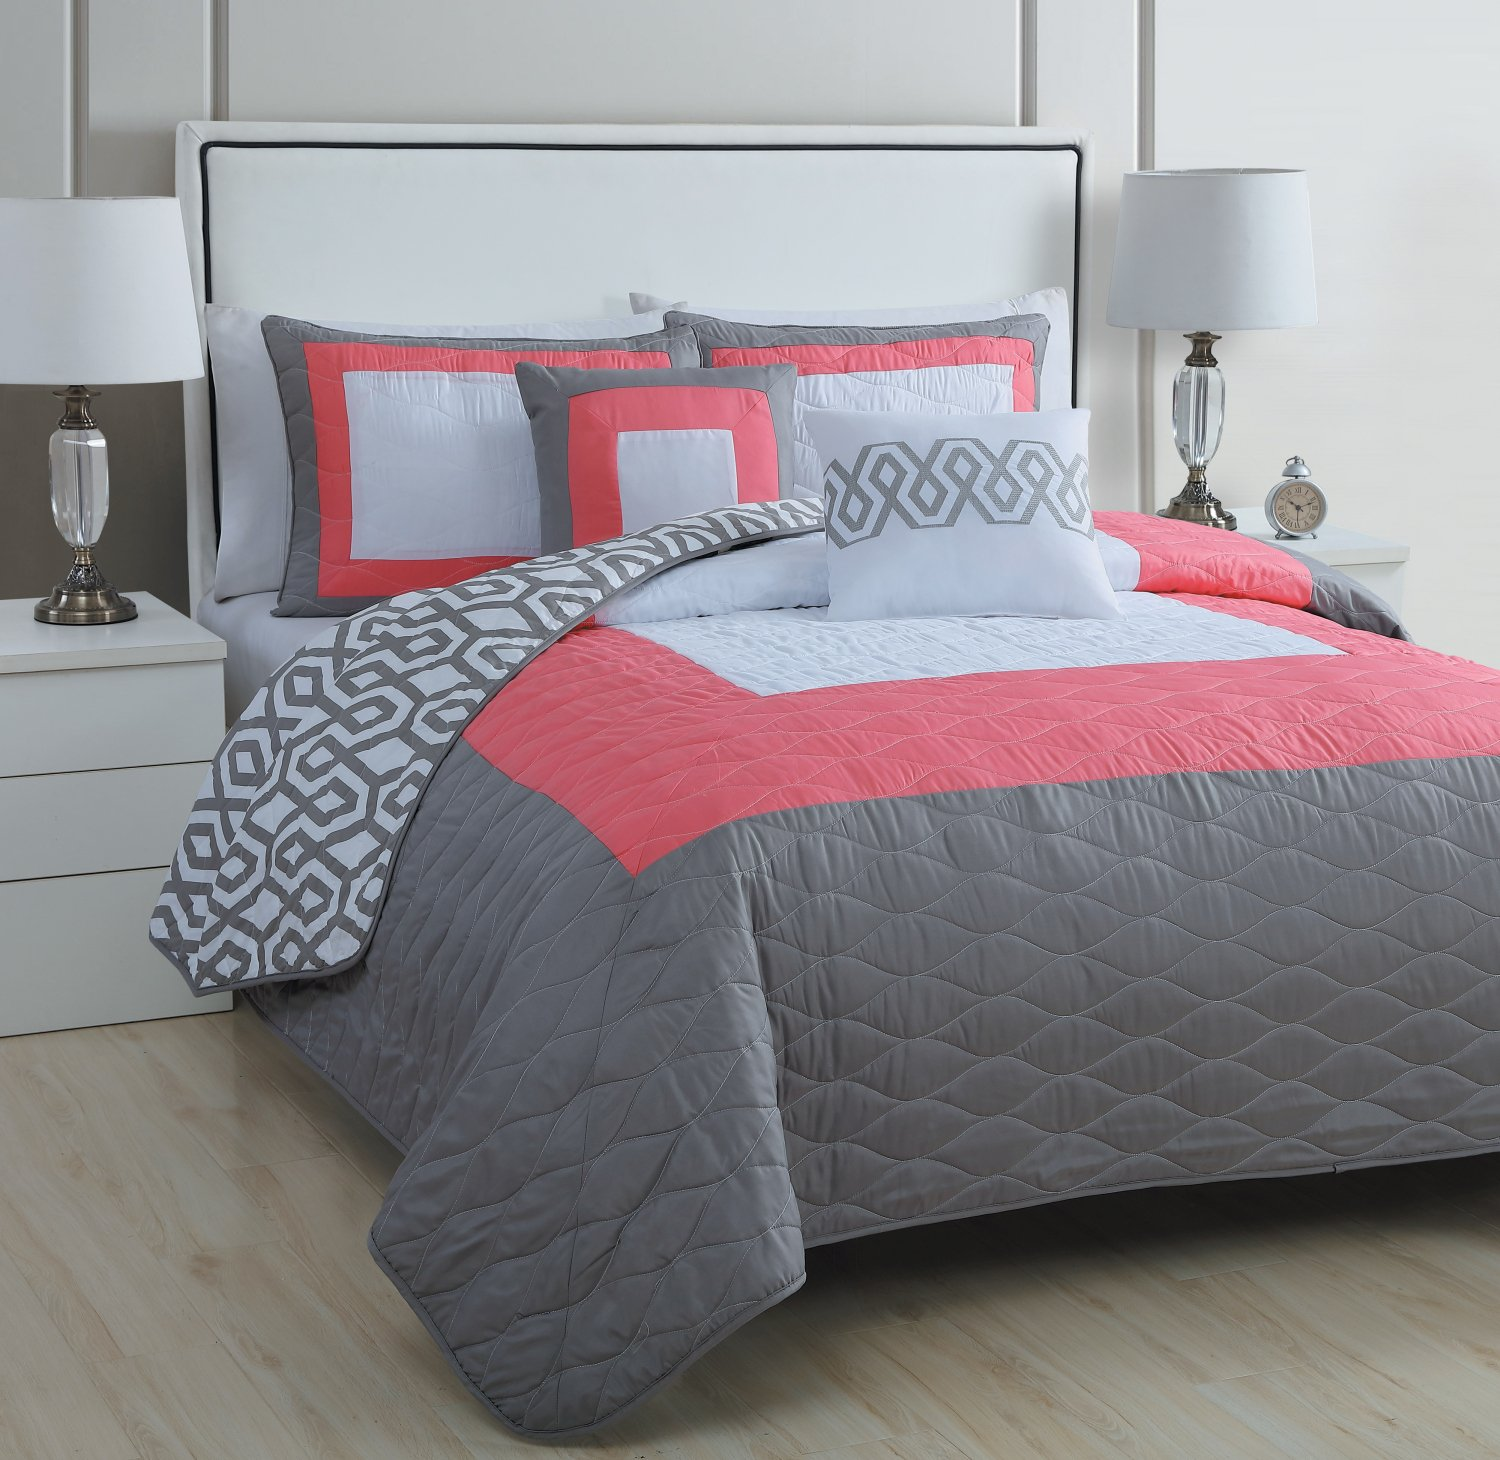 Find and save ideas about Coral bedding on Pinterest. | See more ideas about Coral comforter set, Coral co uk and Gray coral bedroom. Home decor. Coral bedding; Coral bedding. Coral comforter set Shabby Chic - Vintage Baby Bedding - Pink Lace - Coral Bedding. Find this Pin and more on BABY NURSERIES DECOR IDEAS by .